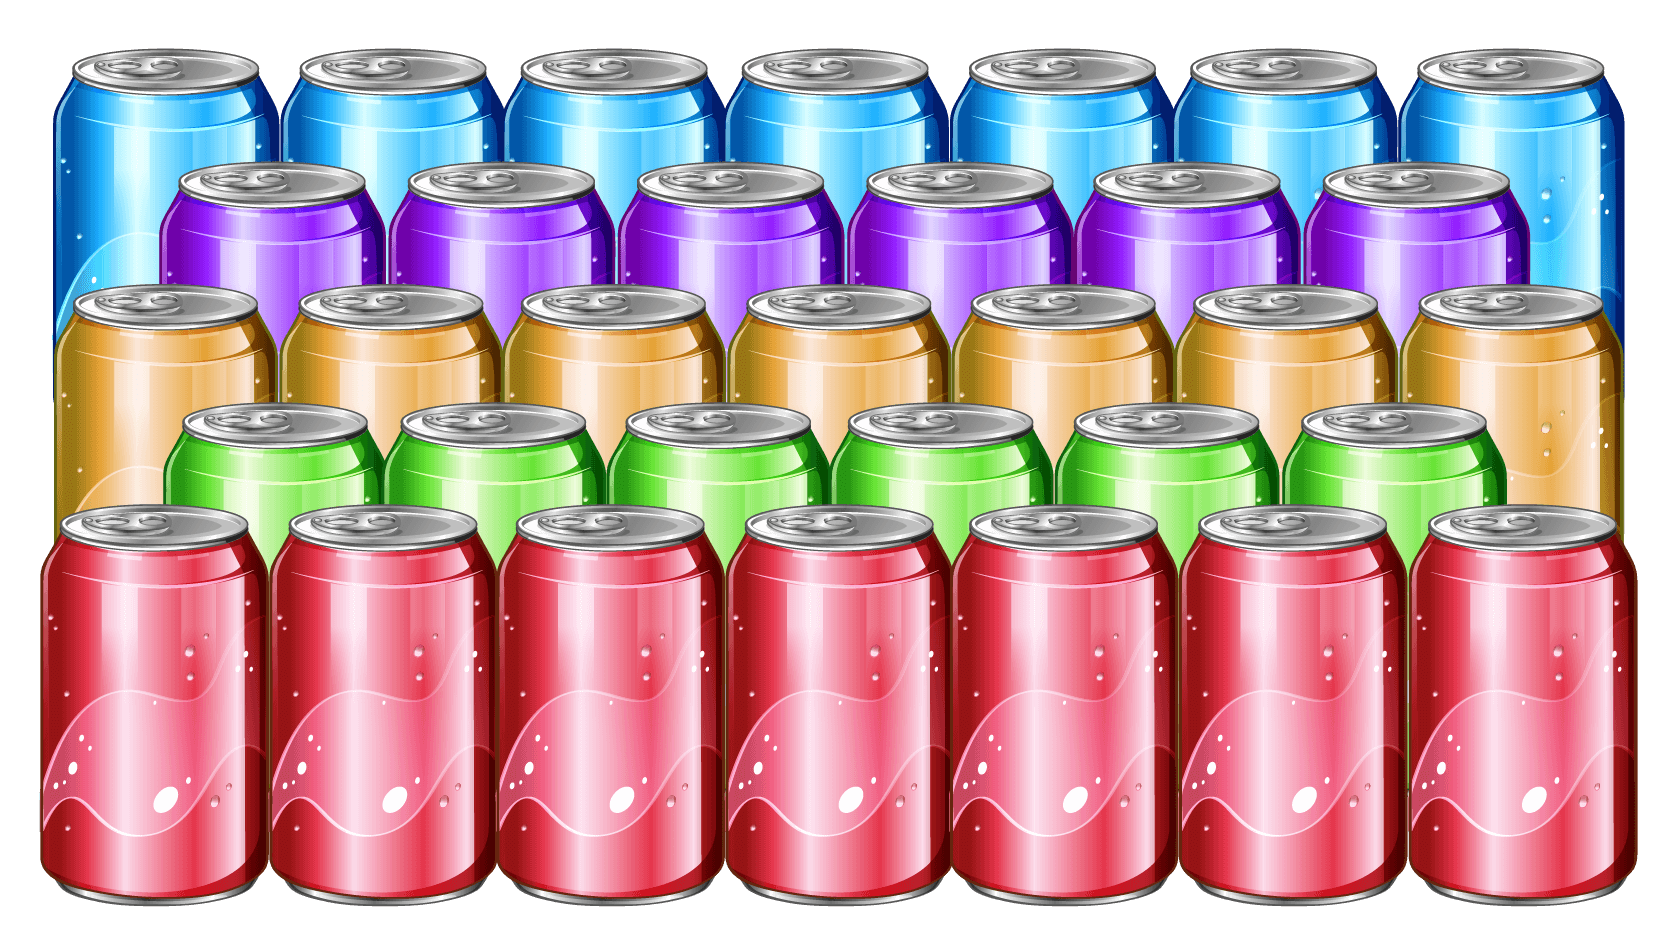 Solved Example: To find the number of cans